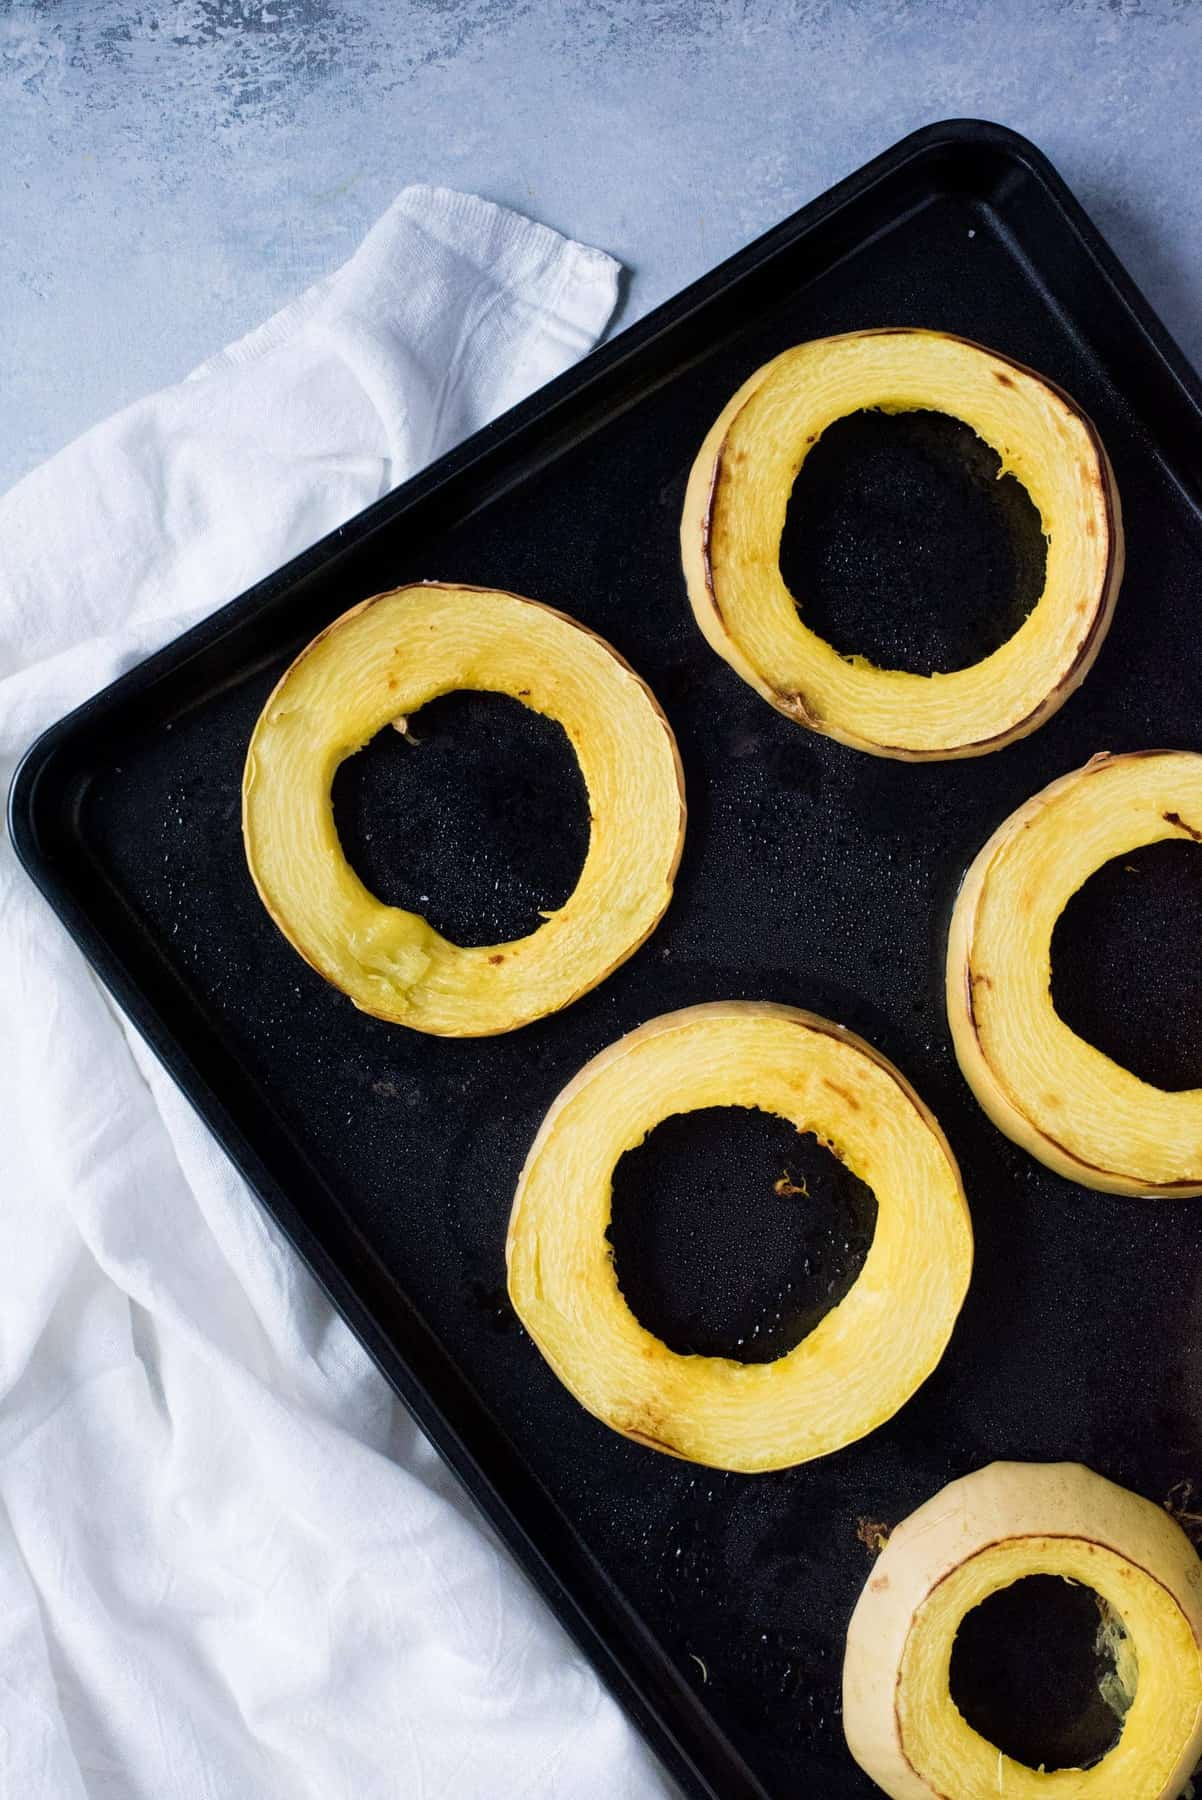 Rings of spaghetti squash spread out on a baking sheet.